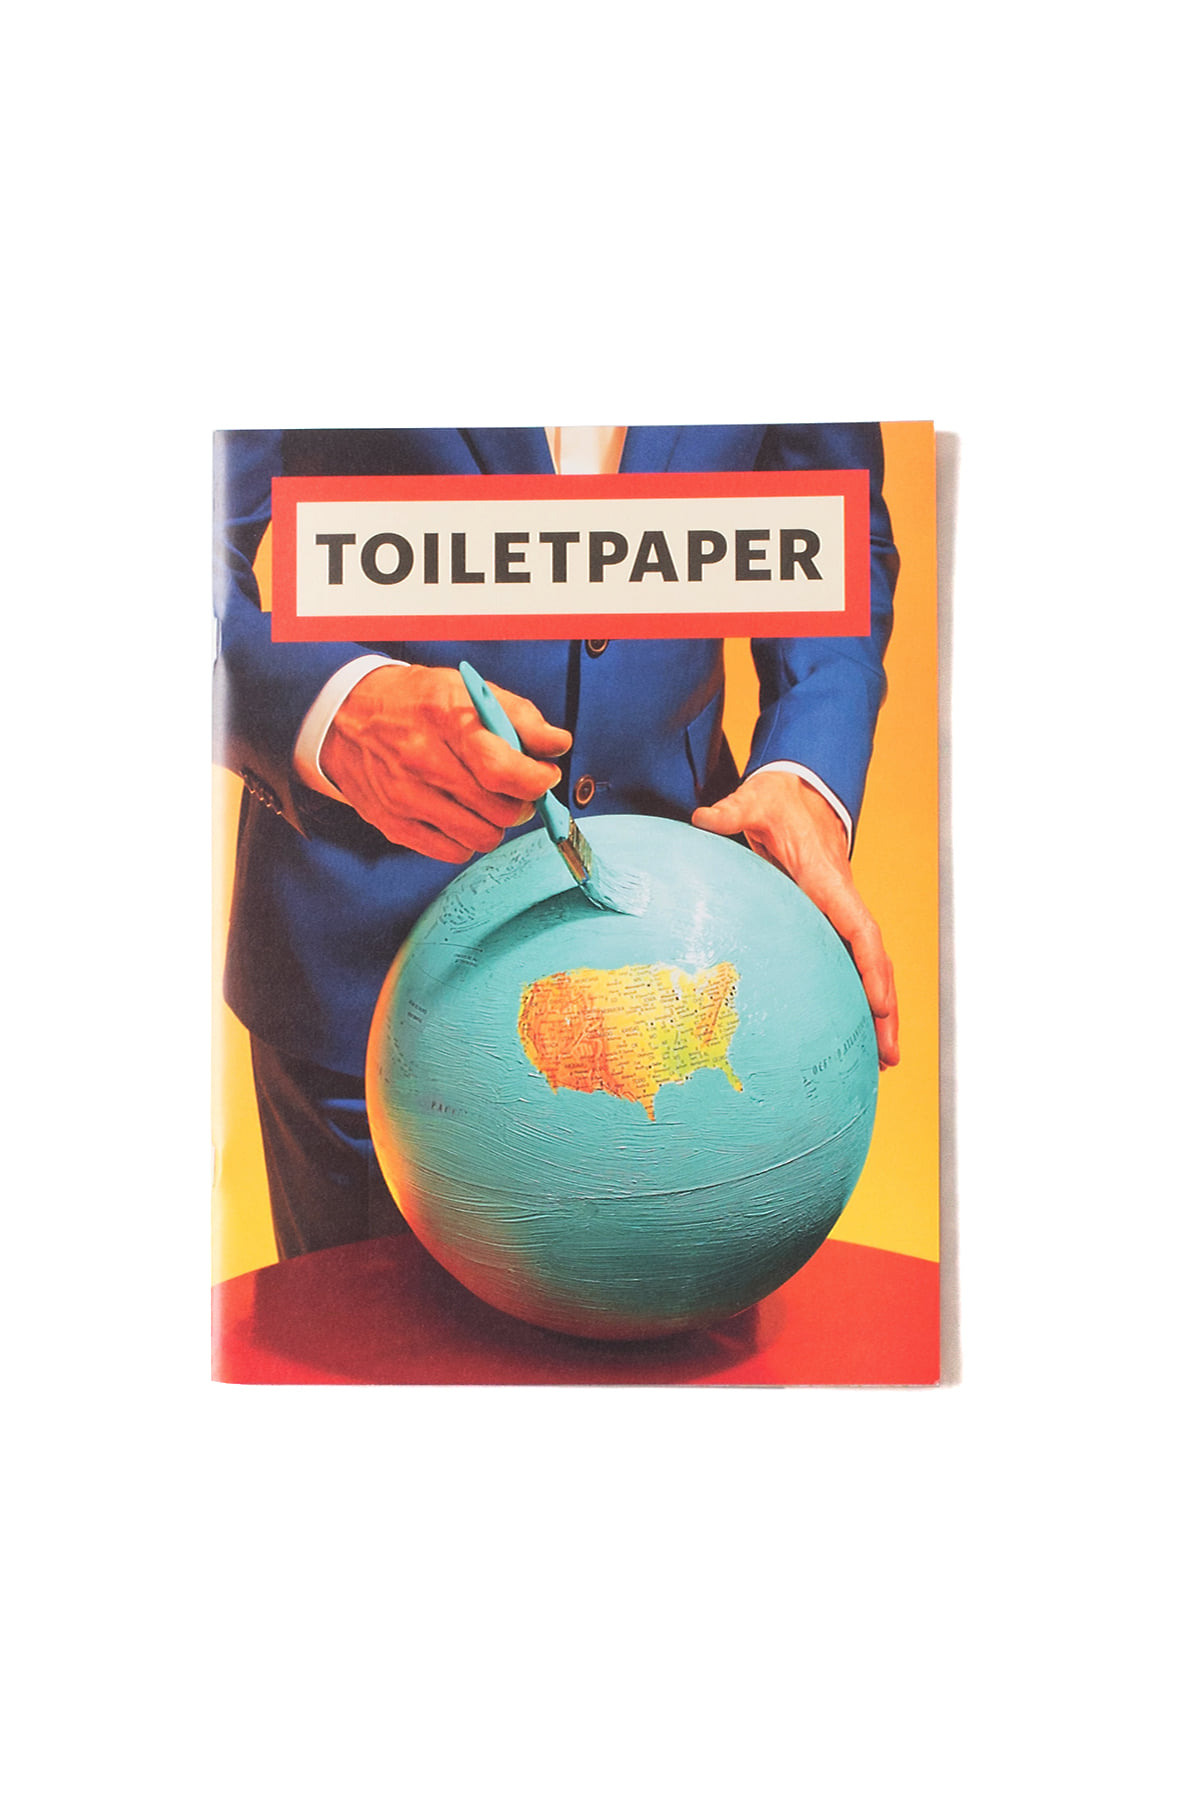 TOILET PAPER : ISSUE. 12